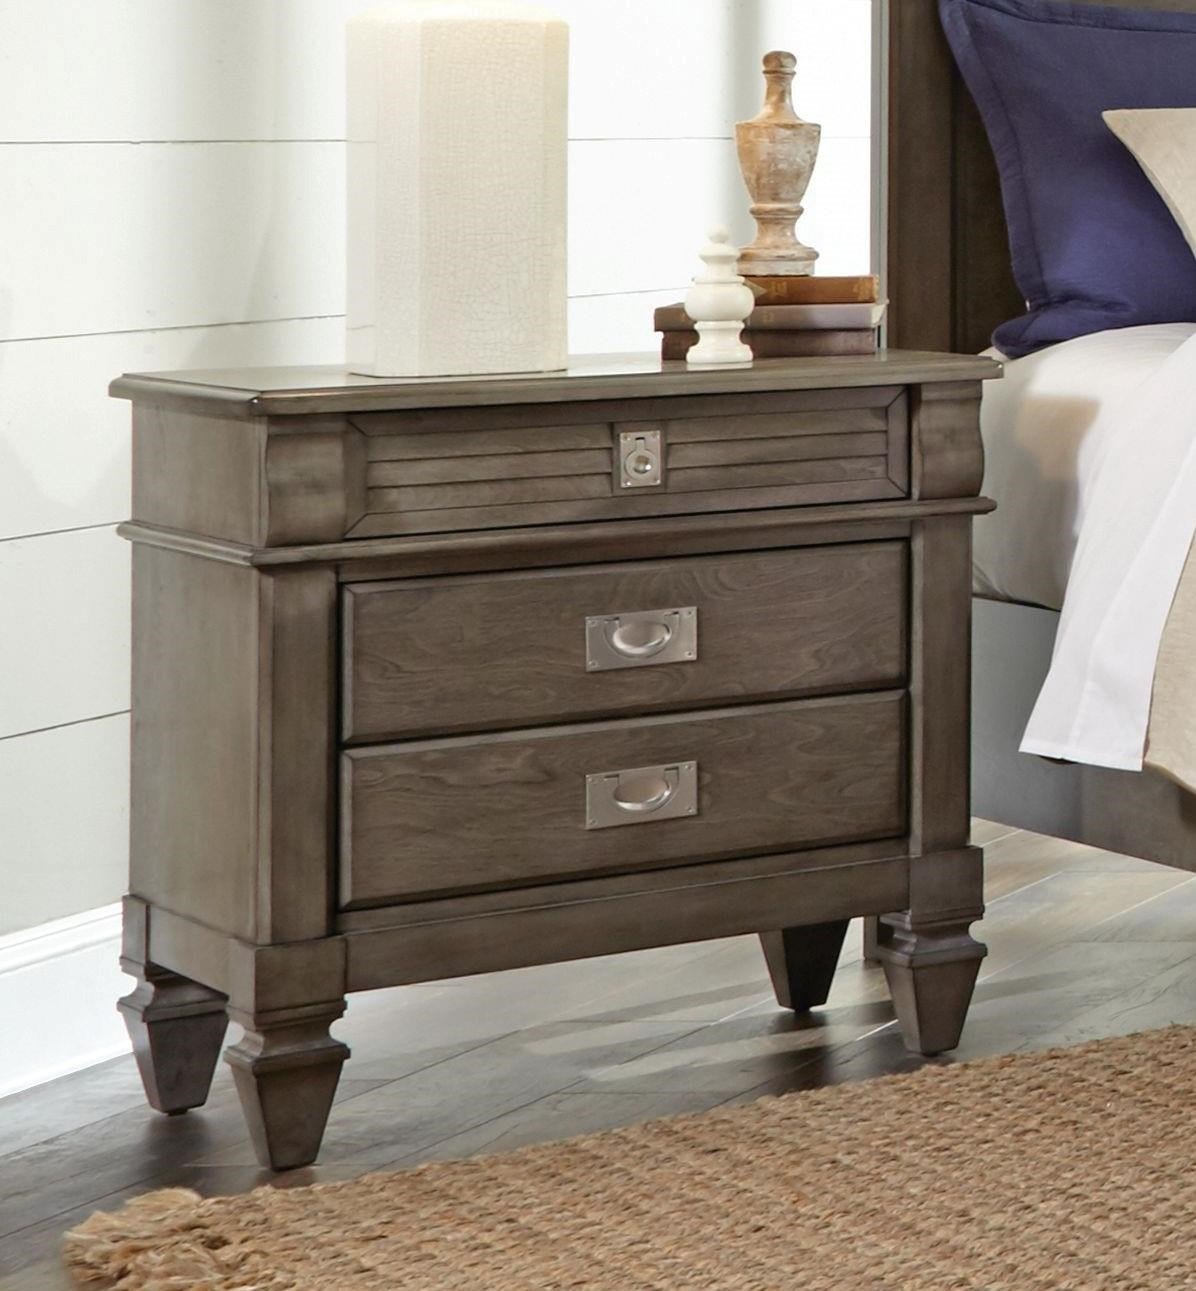 Lifestyle 6204G Grey washed nightstand - Item Number: 6204g-NS